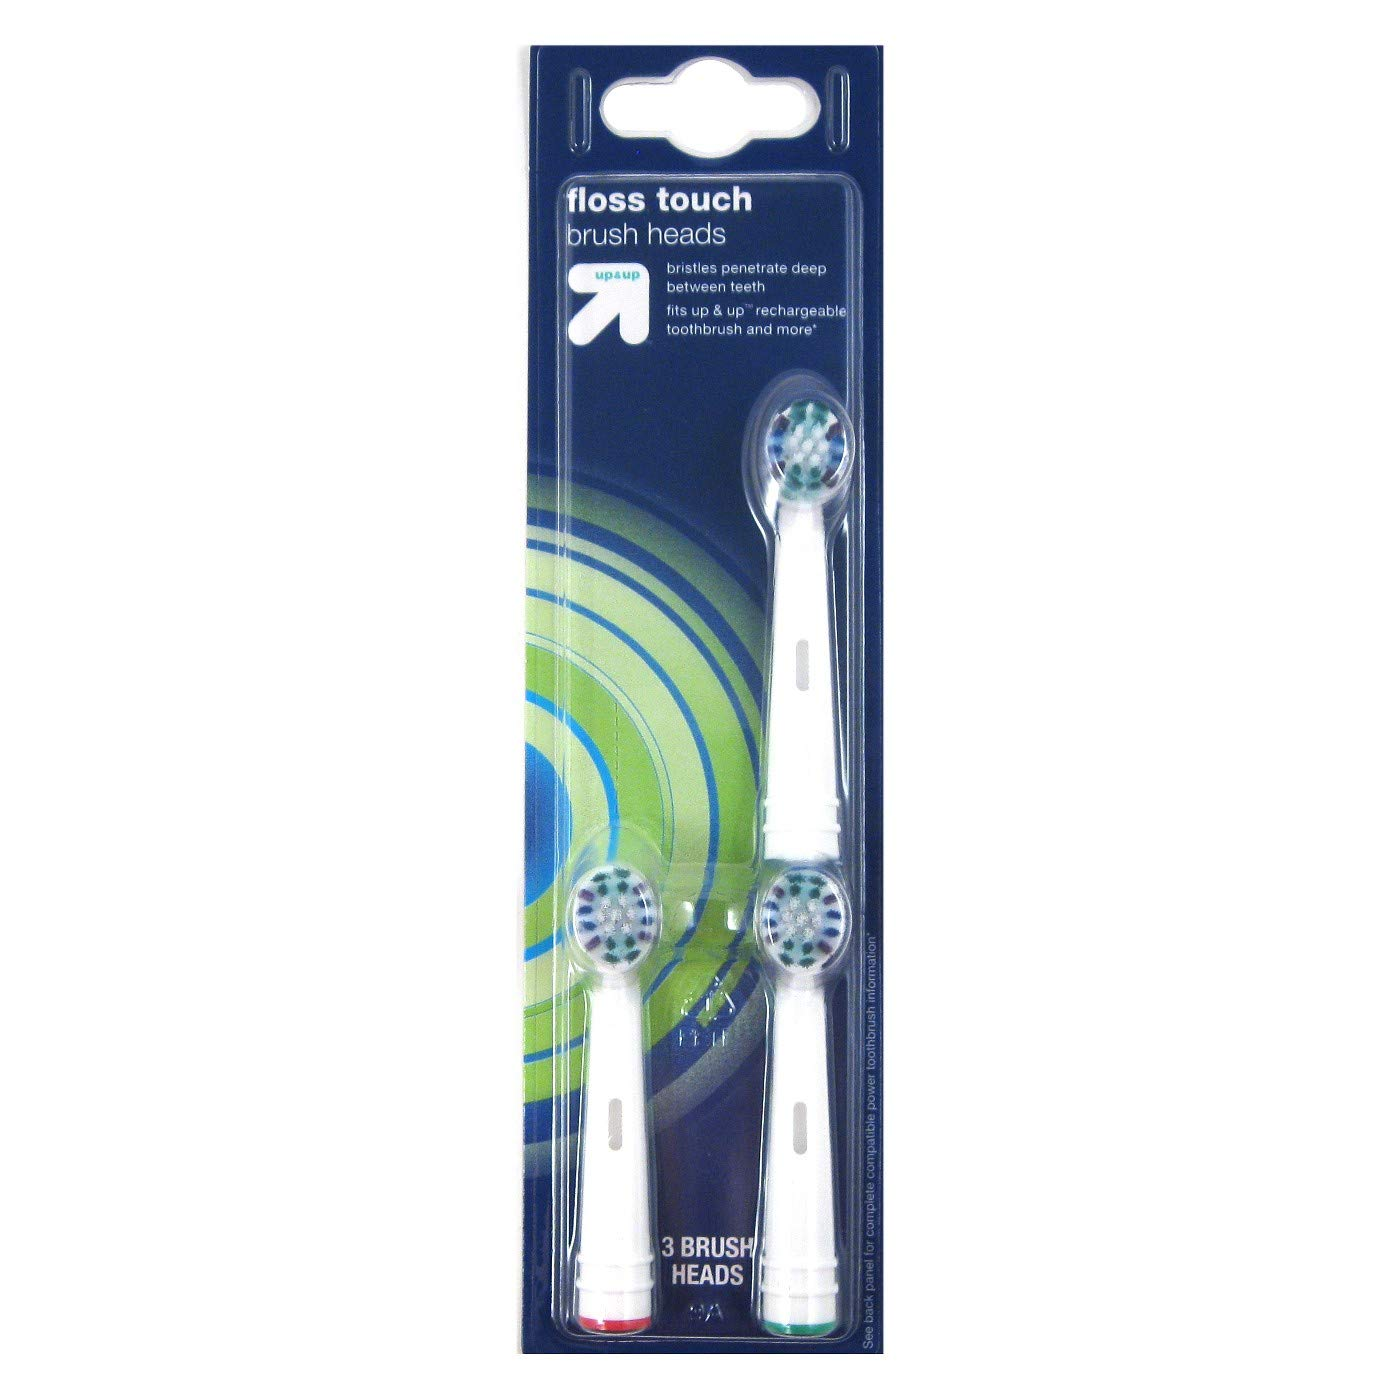 Floss Touch Brush Heads - 3ct - up&up™ (Fits up&up™ Rechargeable Toothbrush and More) by up & up™